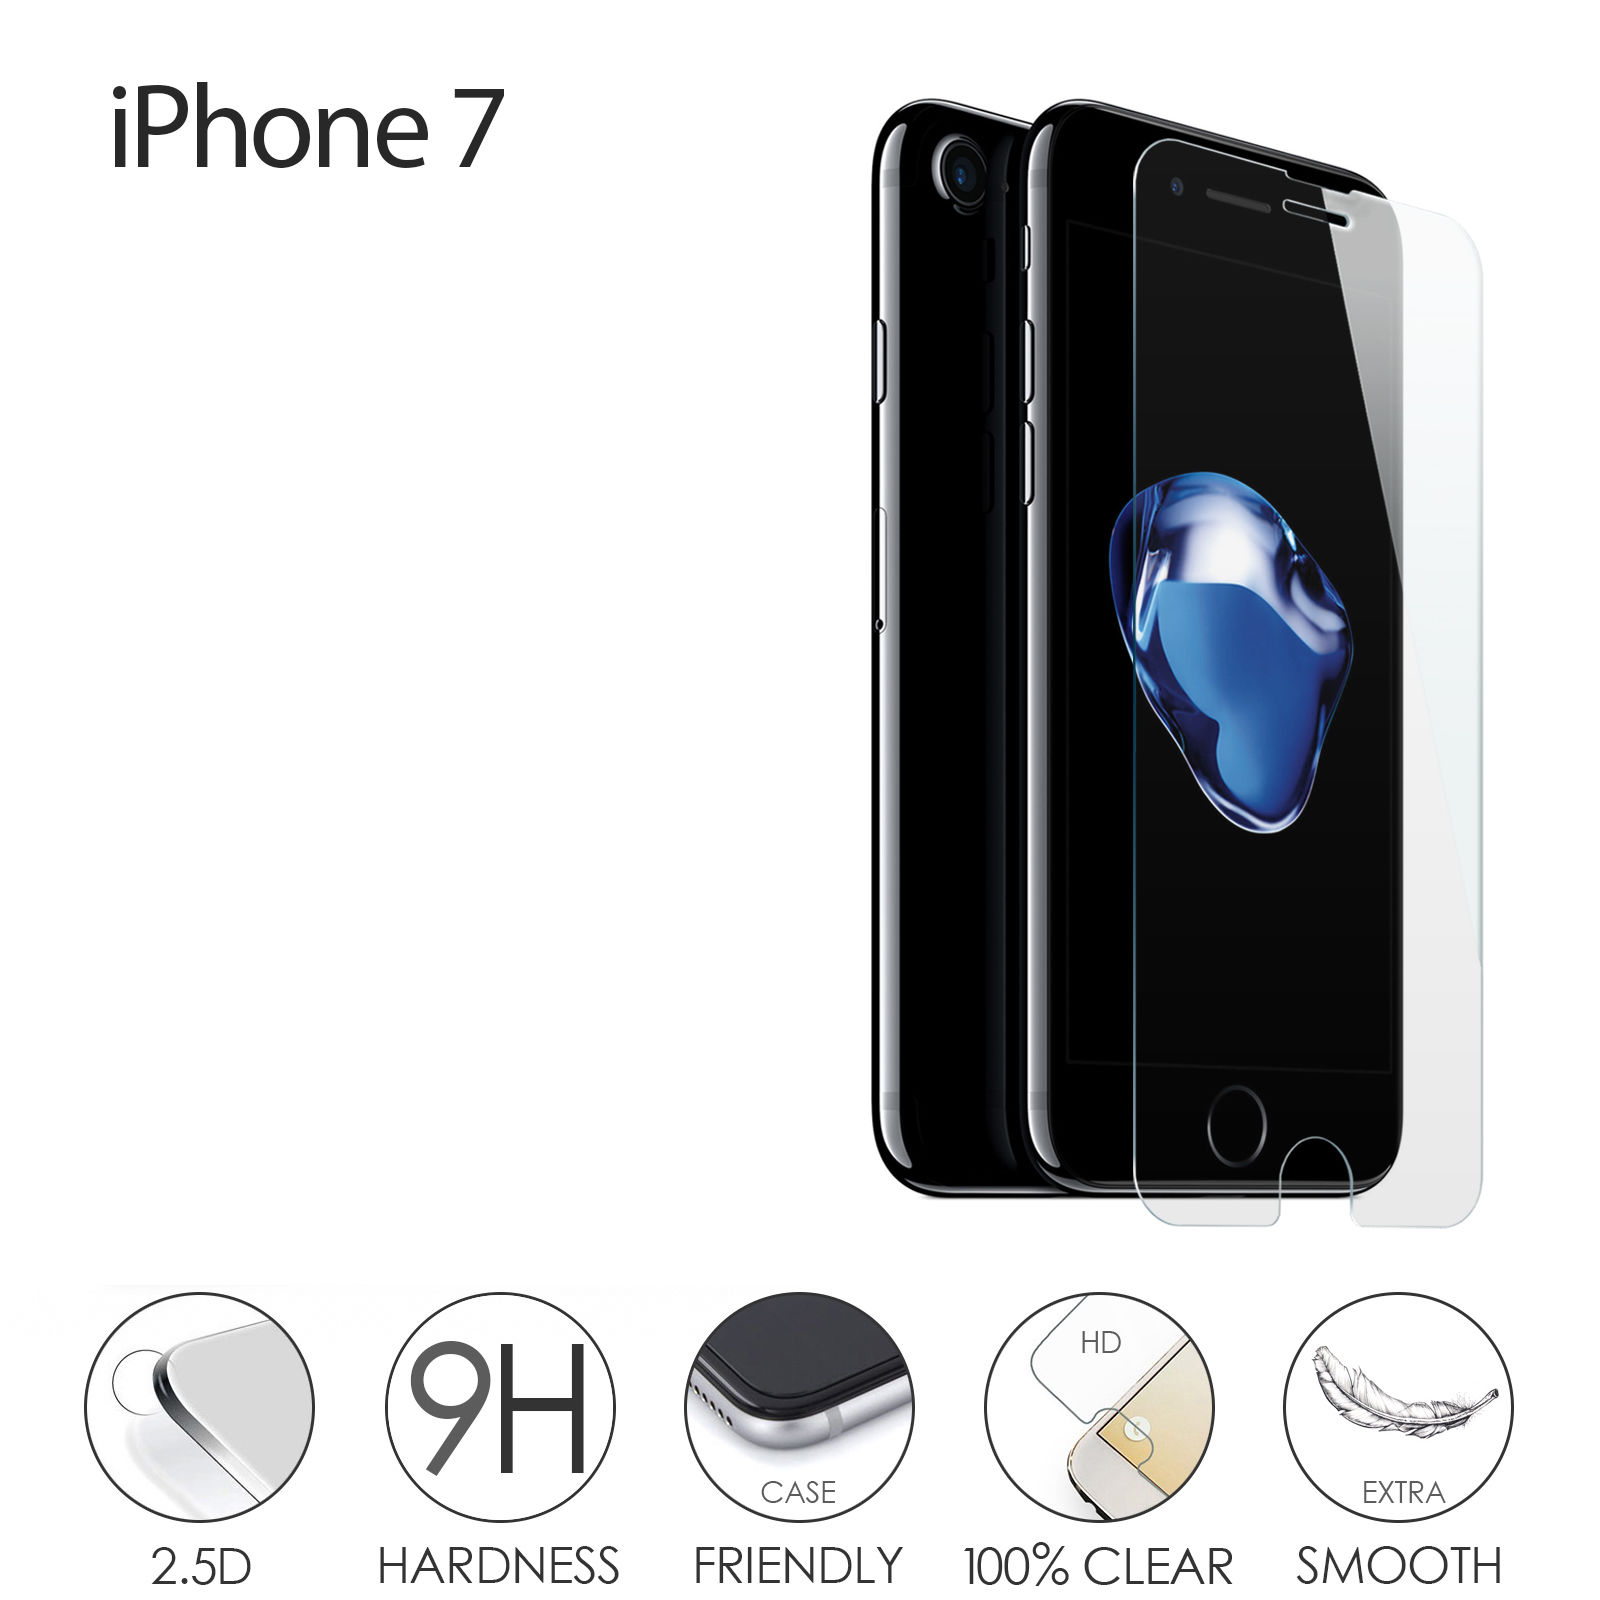 9H 2.5D cell phone screen protector, 0.33mm tempered glass screen protector for iPhone 7